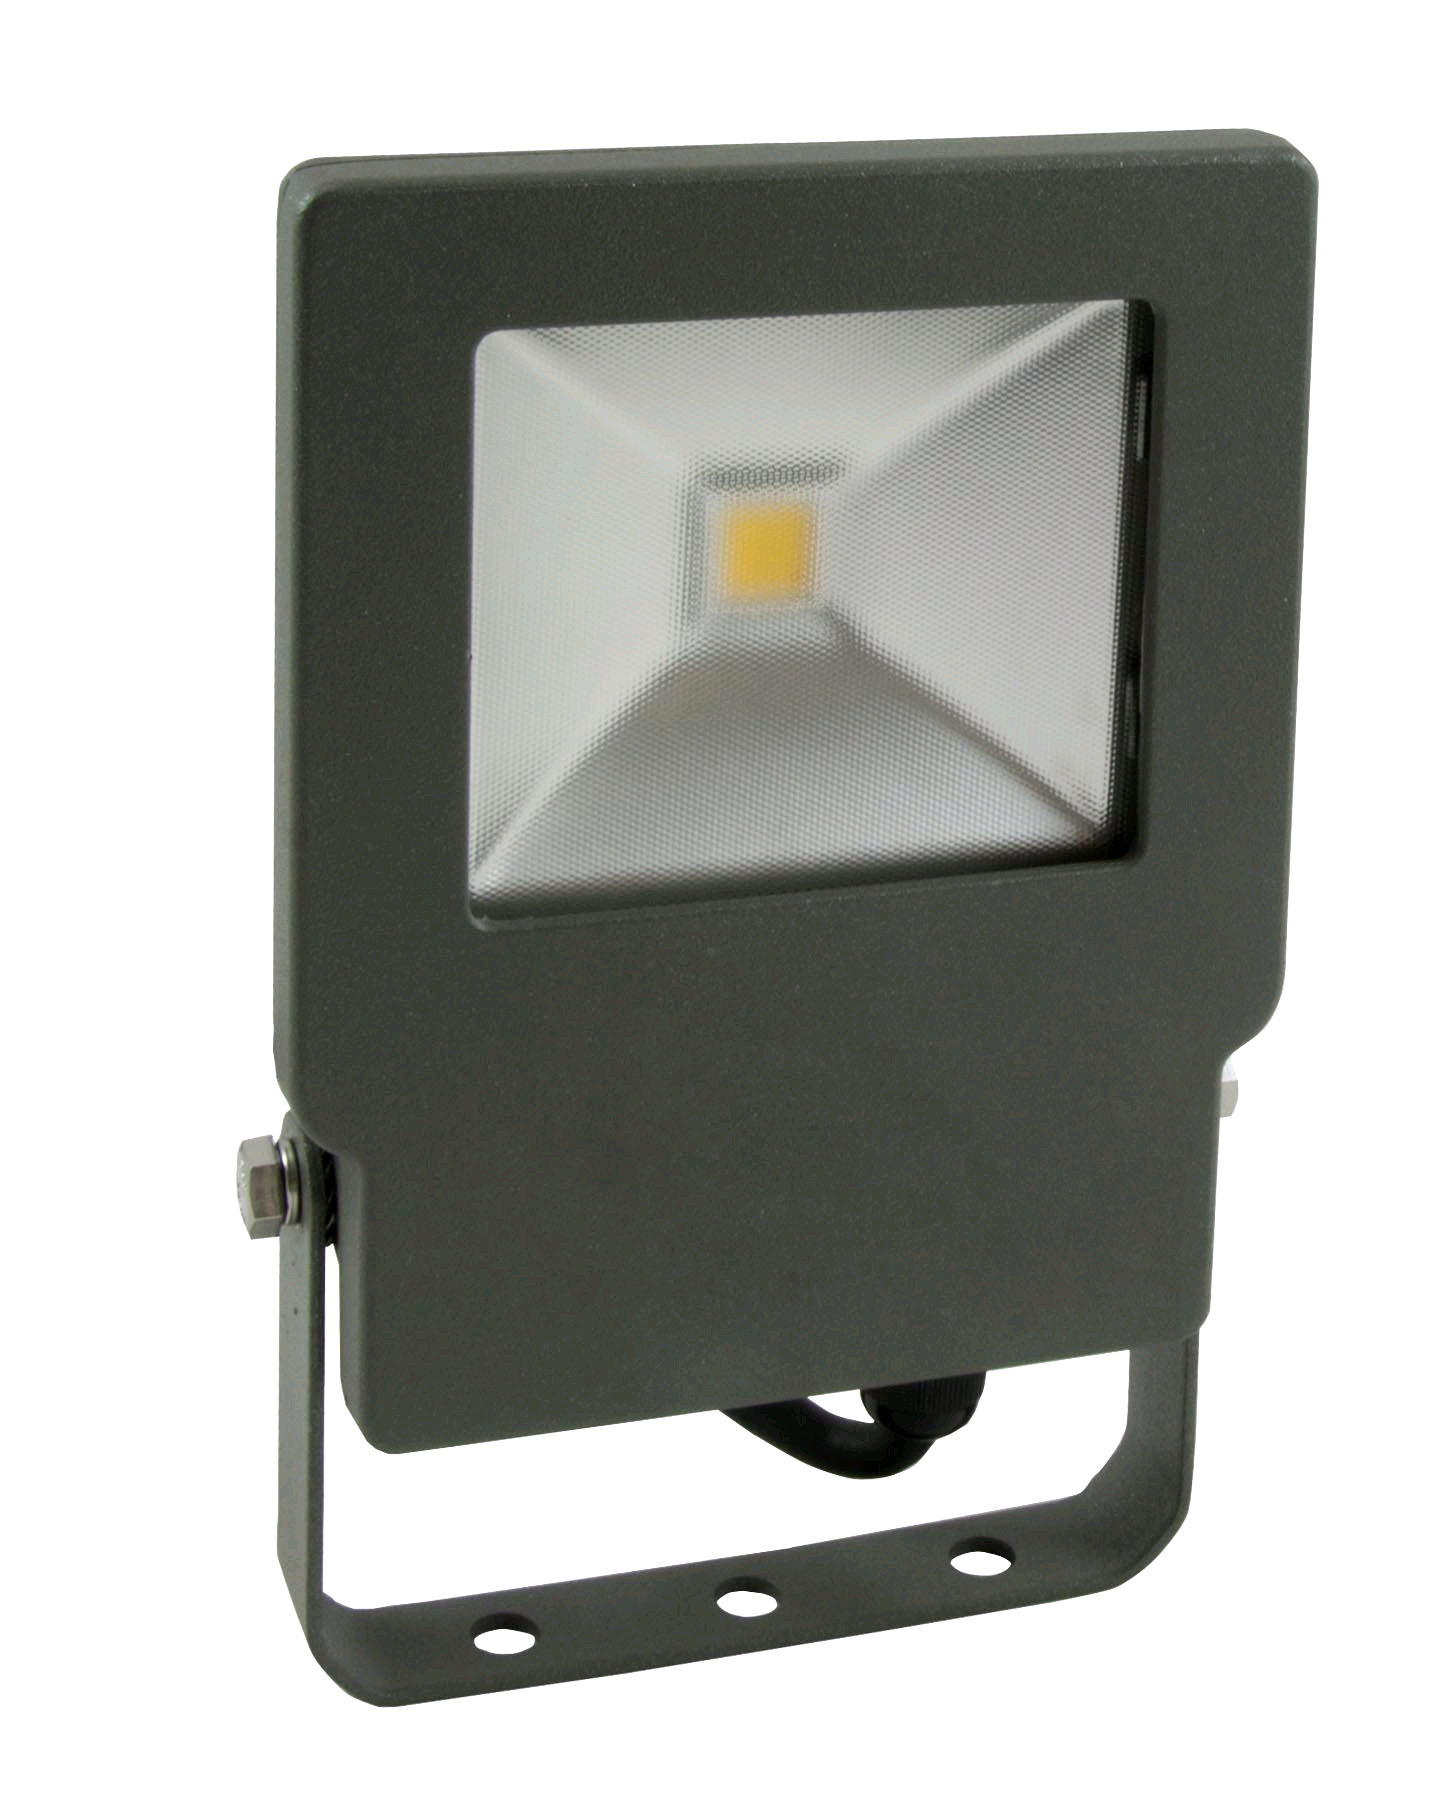 Bell 20w Skyline LED Flood IP65 4000k